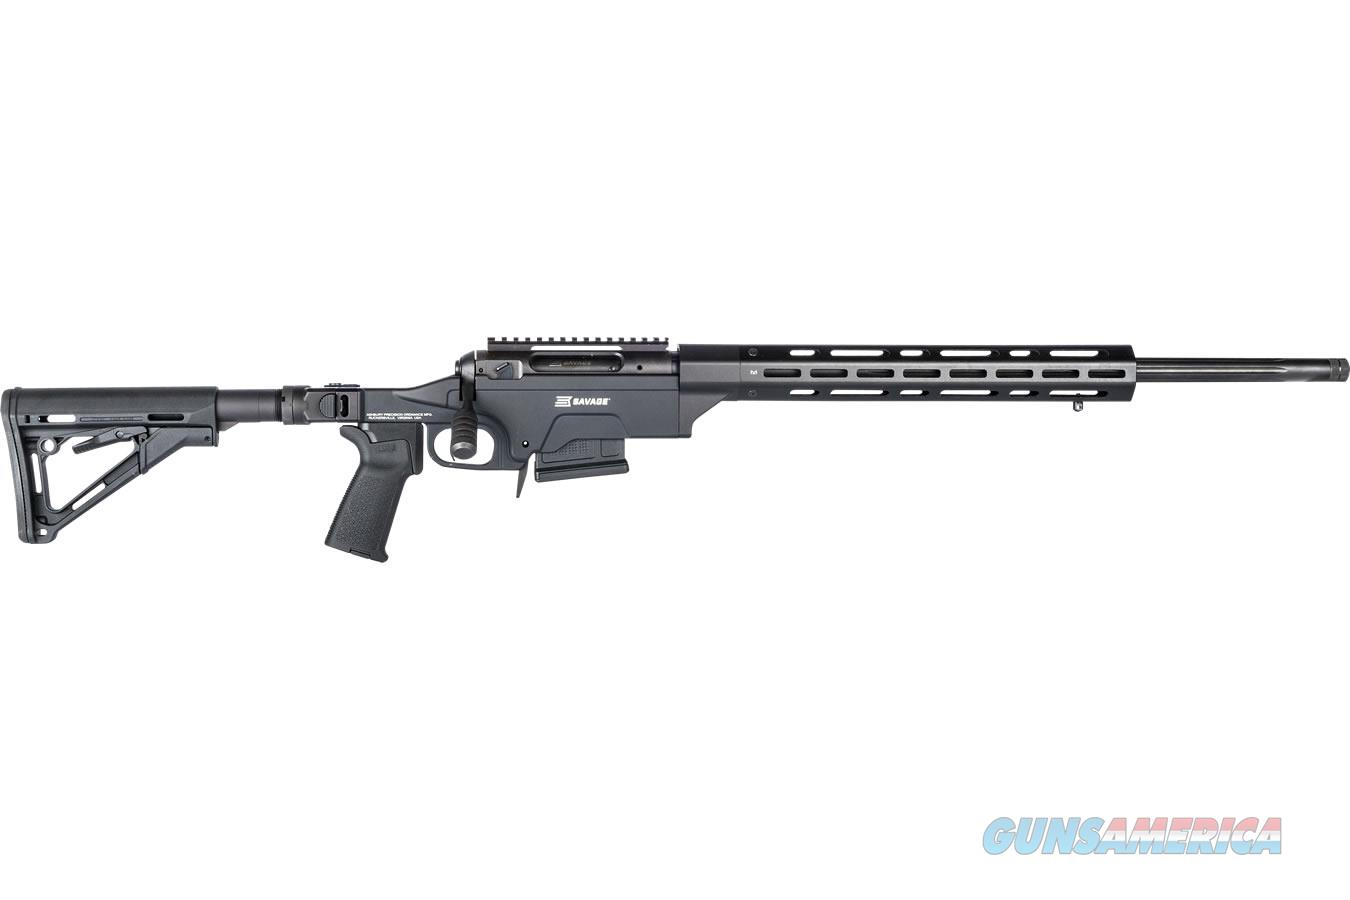 Savage Saber Ashbury Precision New in Box 6.5 Creedmoor Blueprinted, Accu Trigger Saber Chassis System  Guns > Rifles > Savage Rifles > Accutrigger Models > Tactical